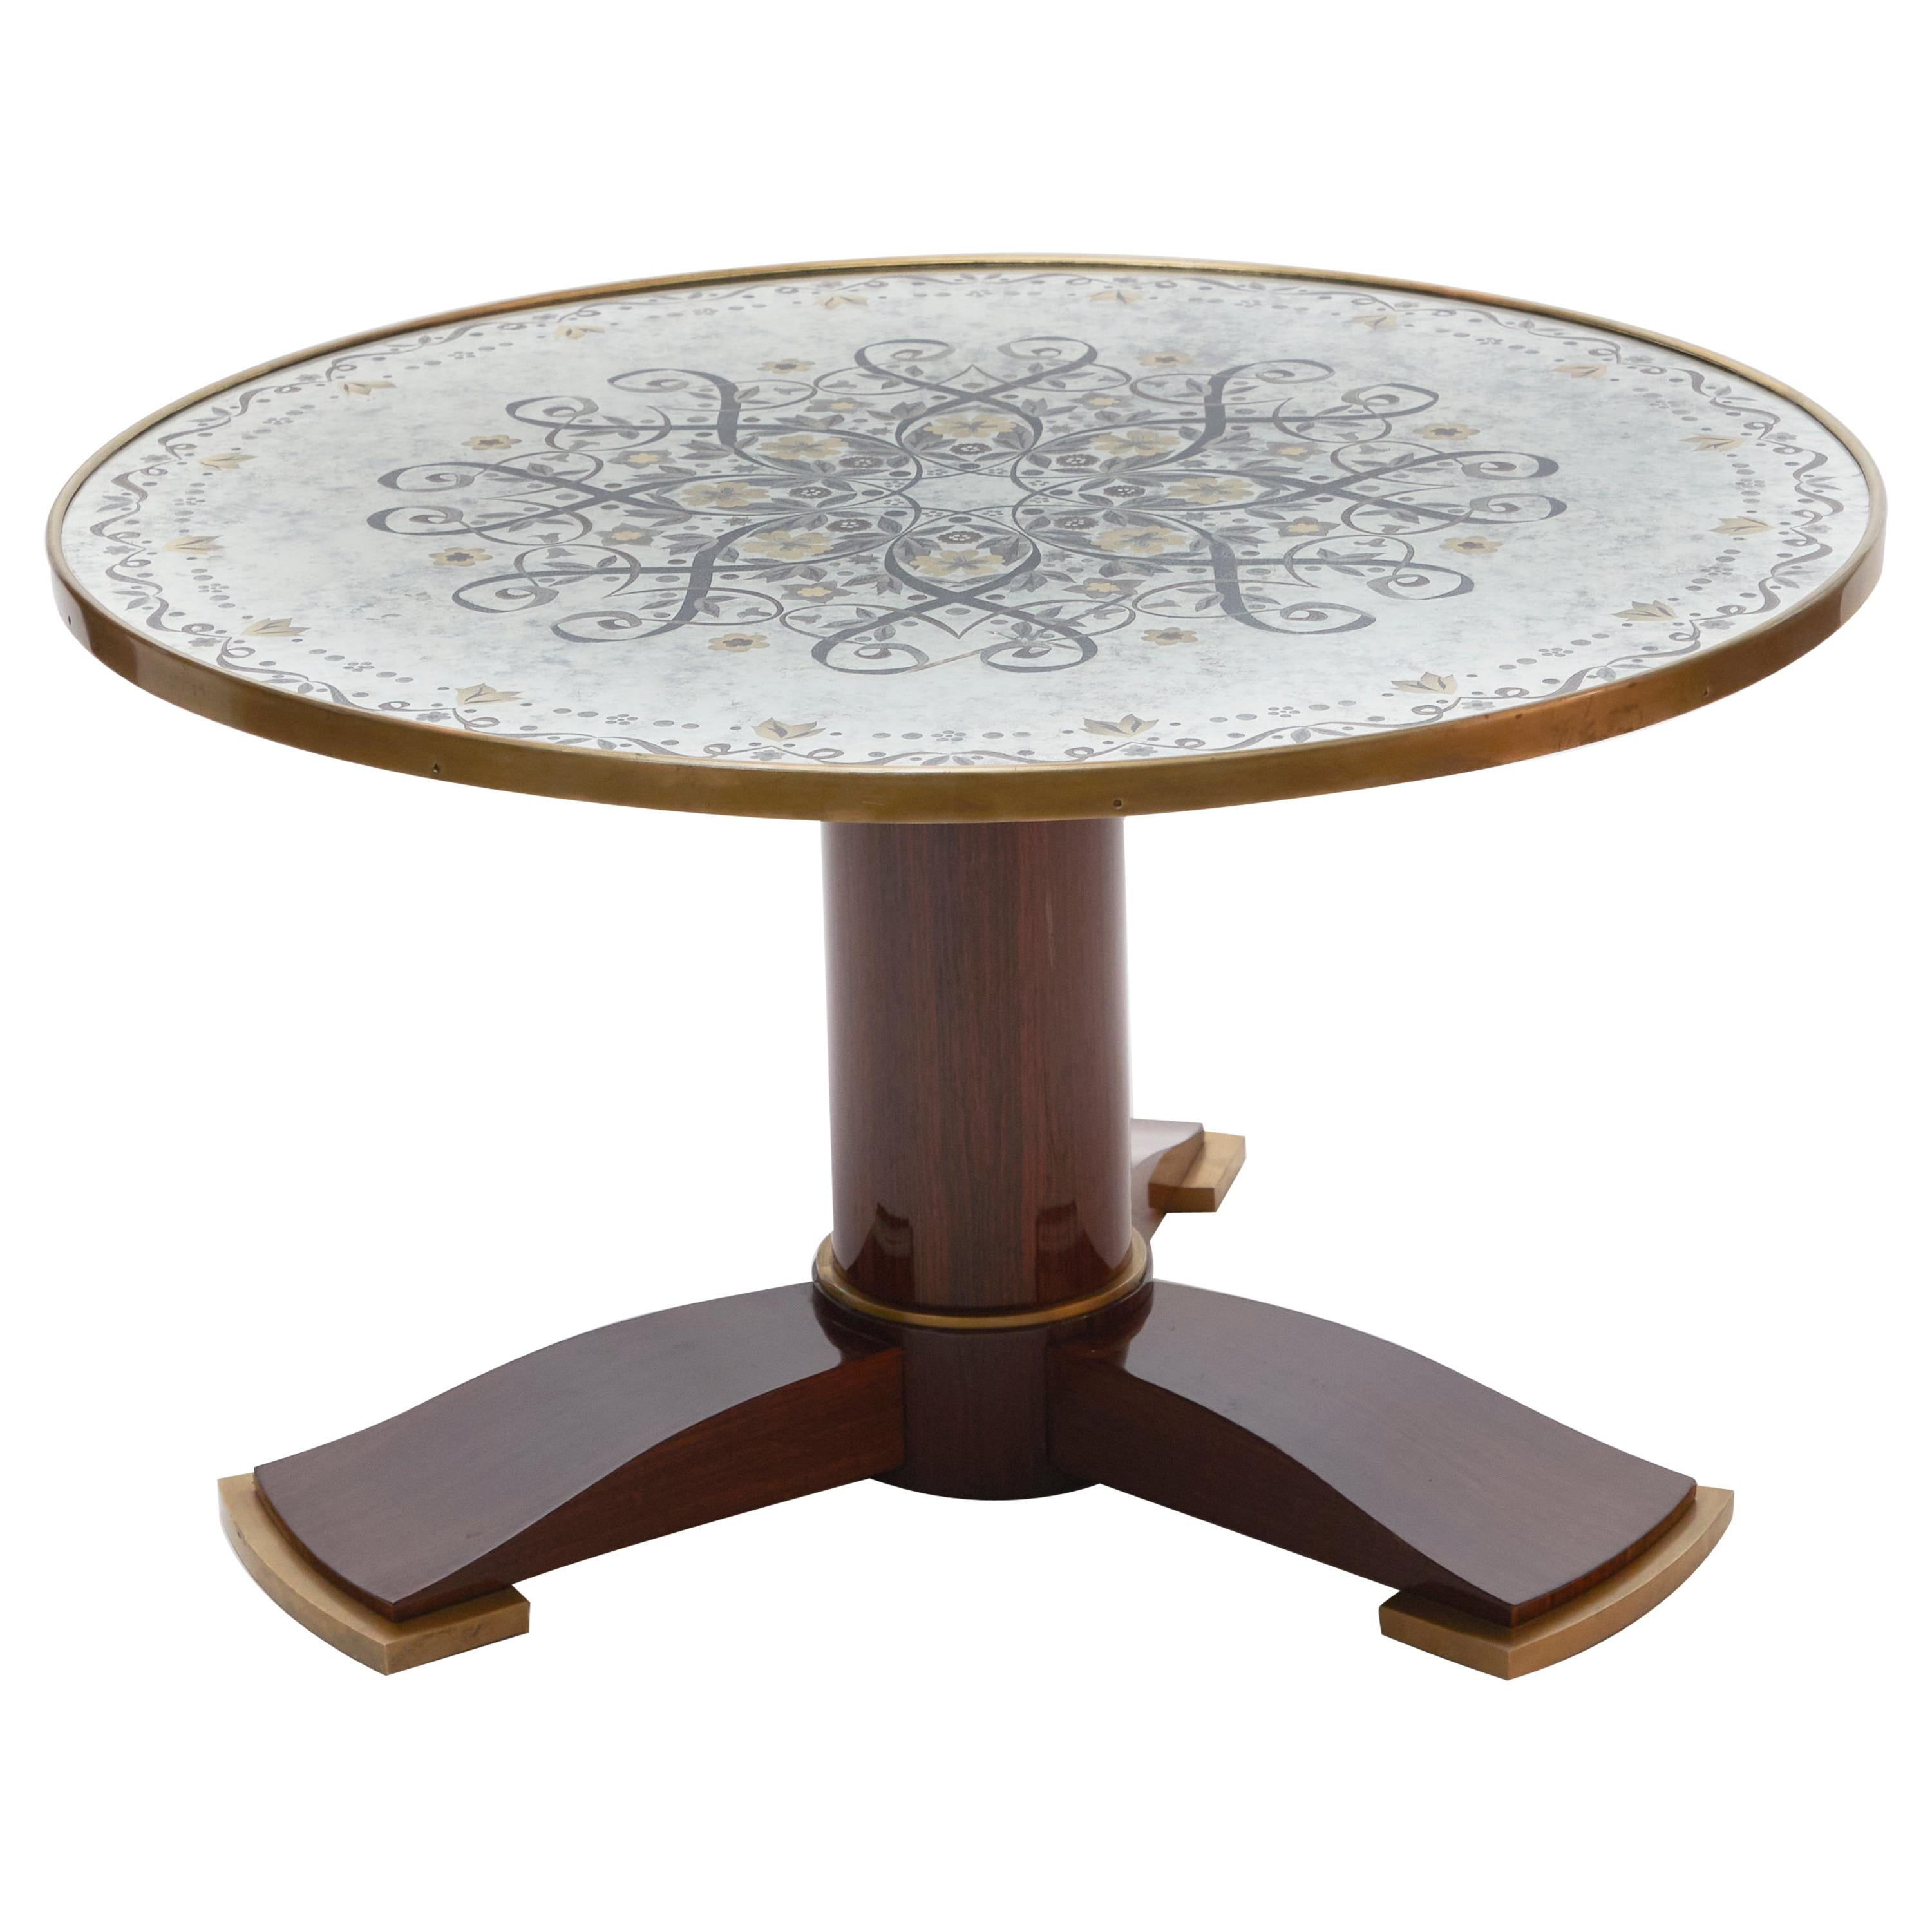 Jules Leleu, Art Deco Coffee Table with Mirrored Eglomisé Top, France, 1930s